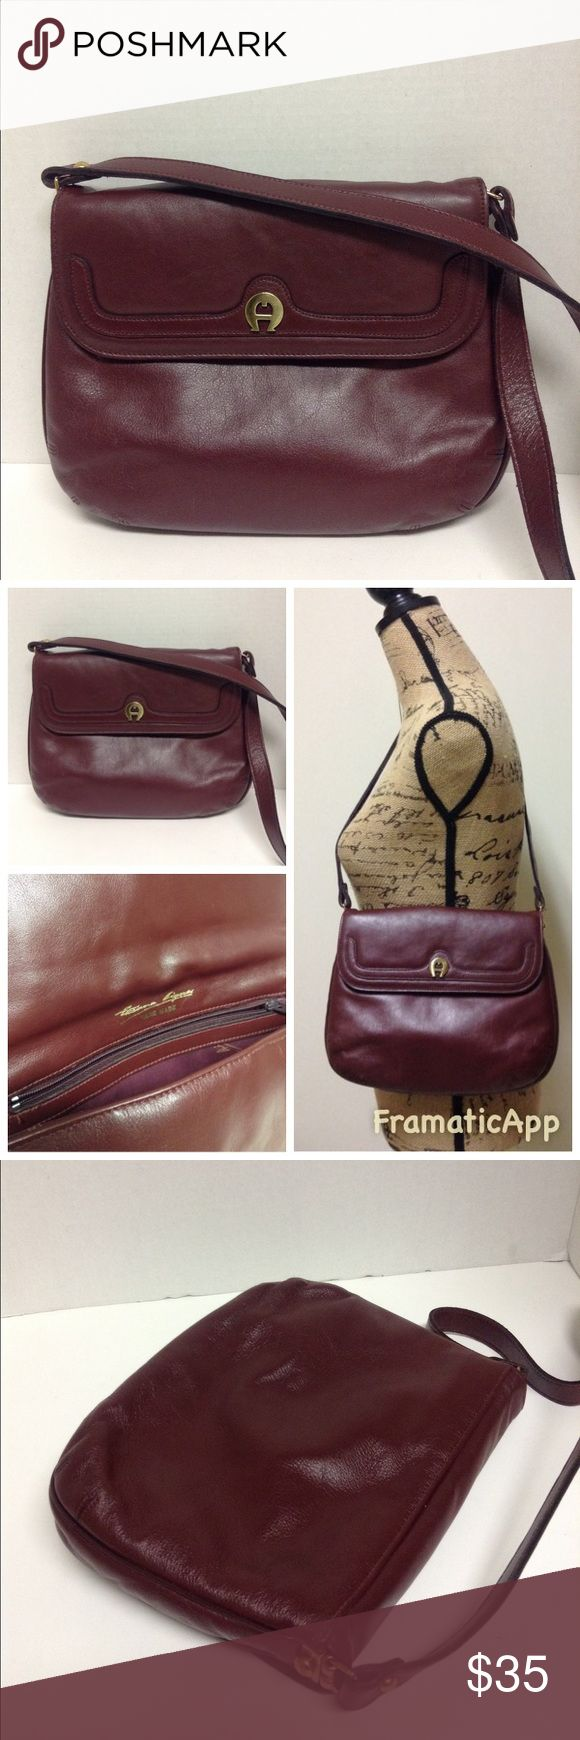 "Etienne Aigner Vintage Handmade Leather Handbag Etienne Aigner Vintage Handmade Oxblood Leather Handbag. Gently used great condition very small signs worn.Measures approx 10 1/2"" x 8 1/2""  strap 14"".Thanks for looking Etienne Aigner Bags Shoulder Bags"